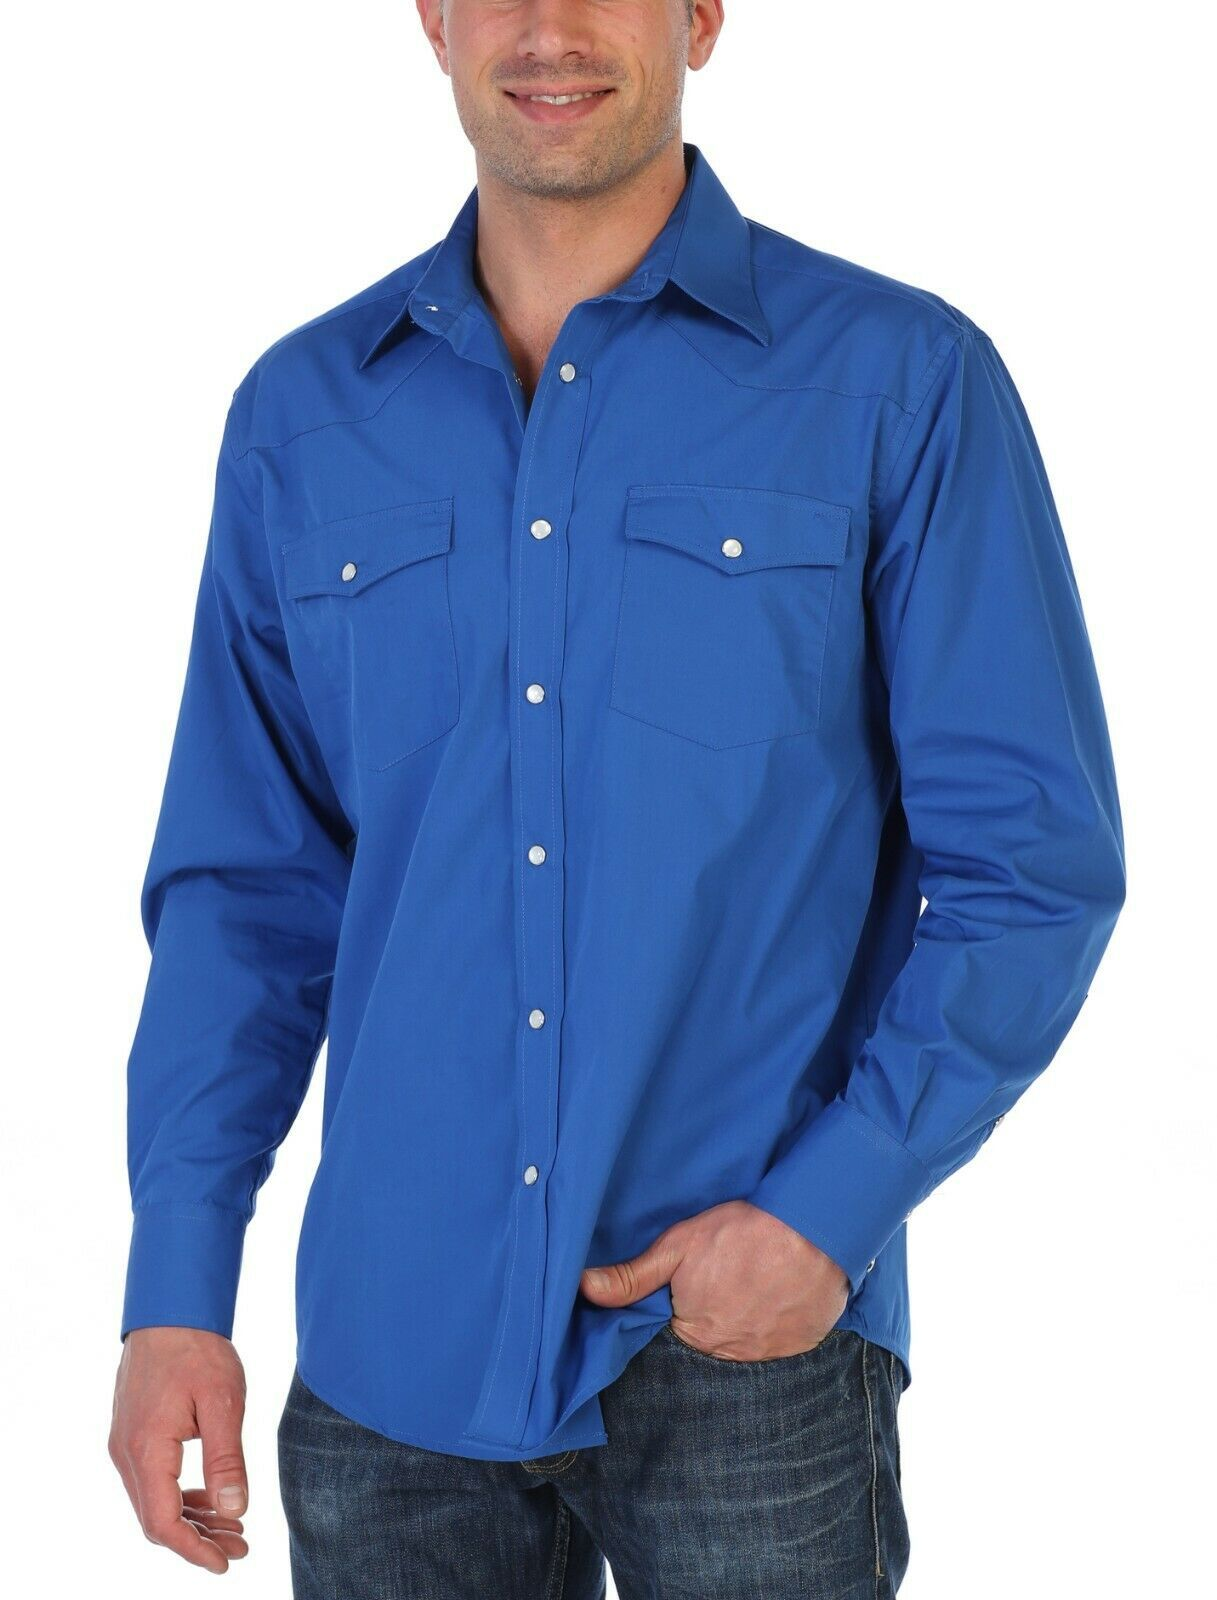 Gioberti Men's Solid Long Sleeve Pearl Snap Button Royal Blue Western Shirt - S